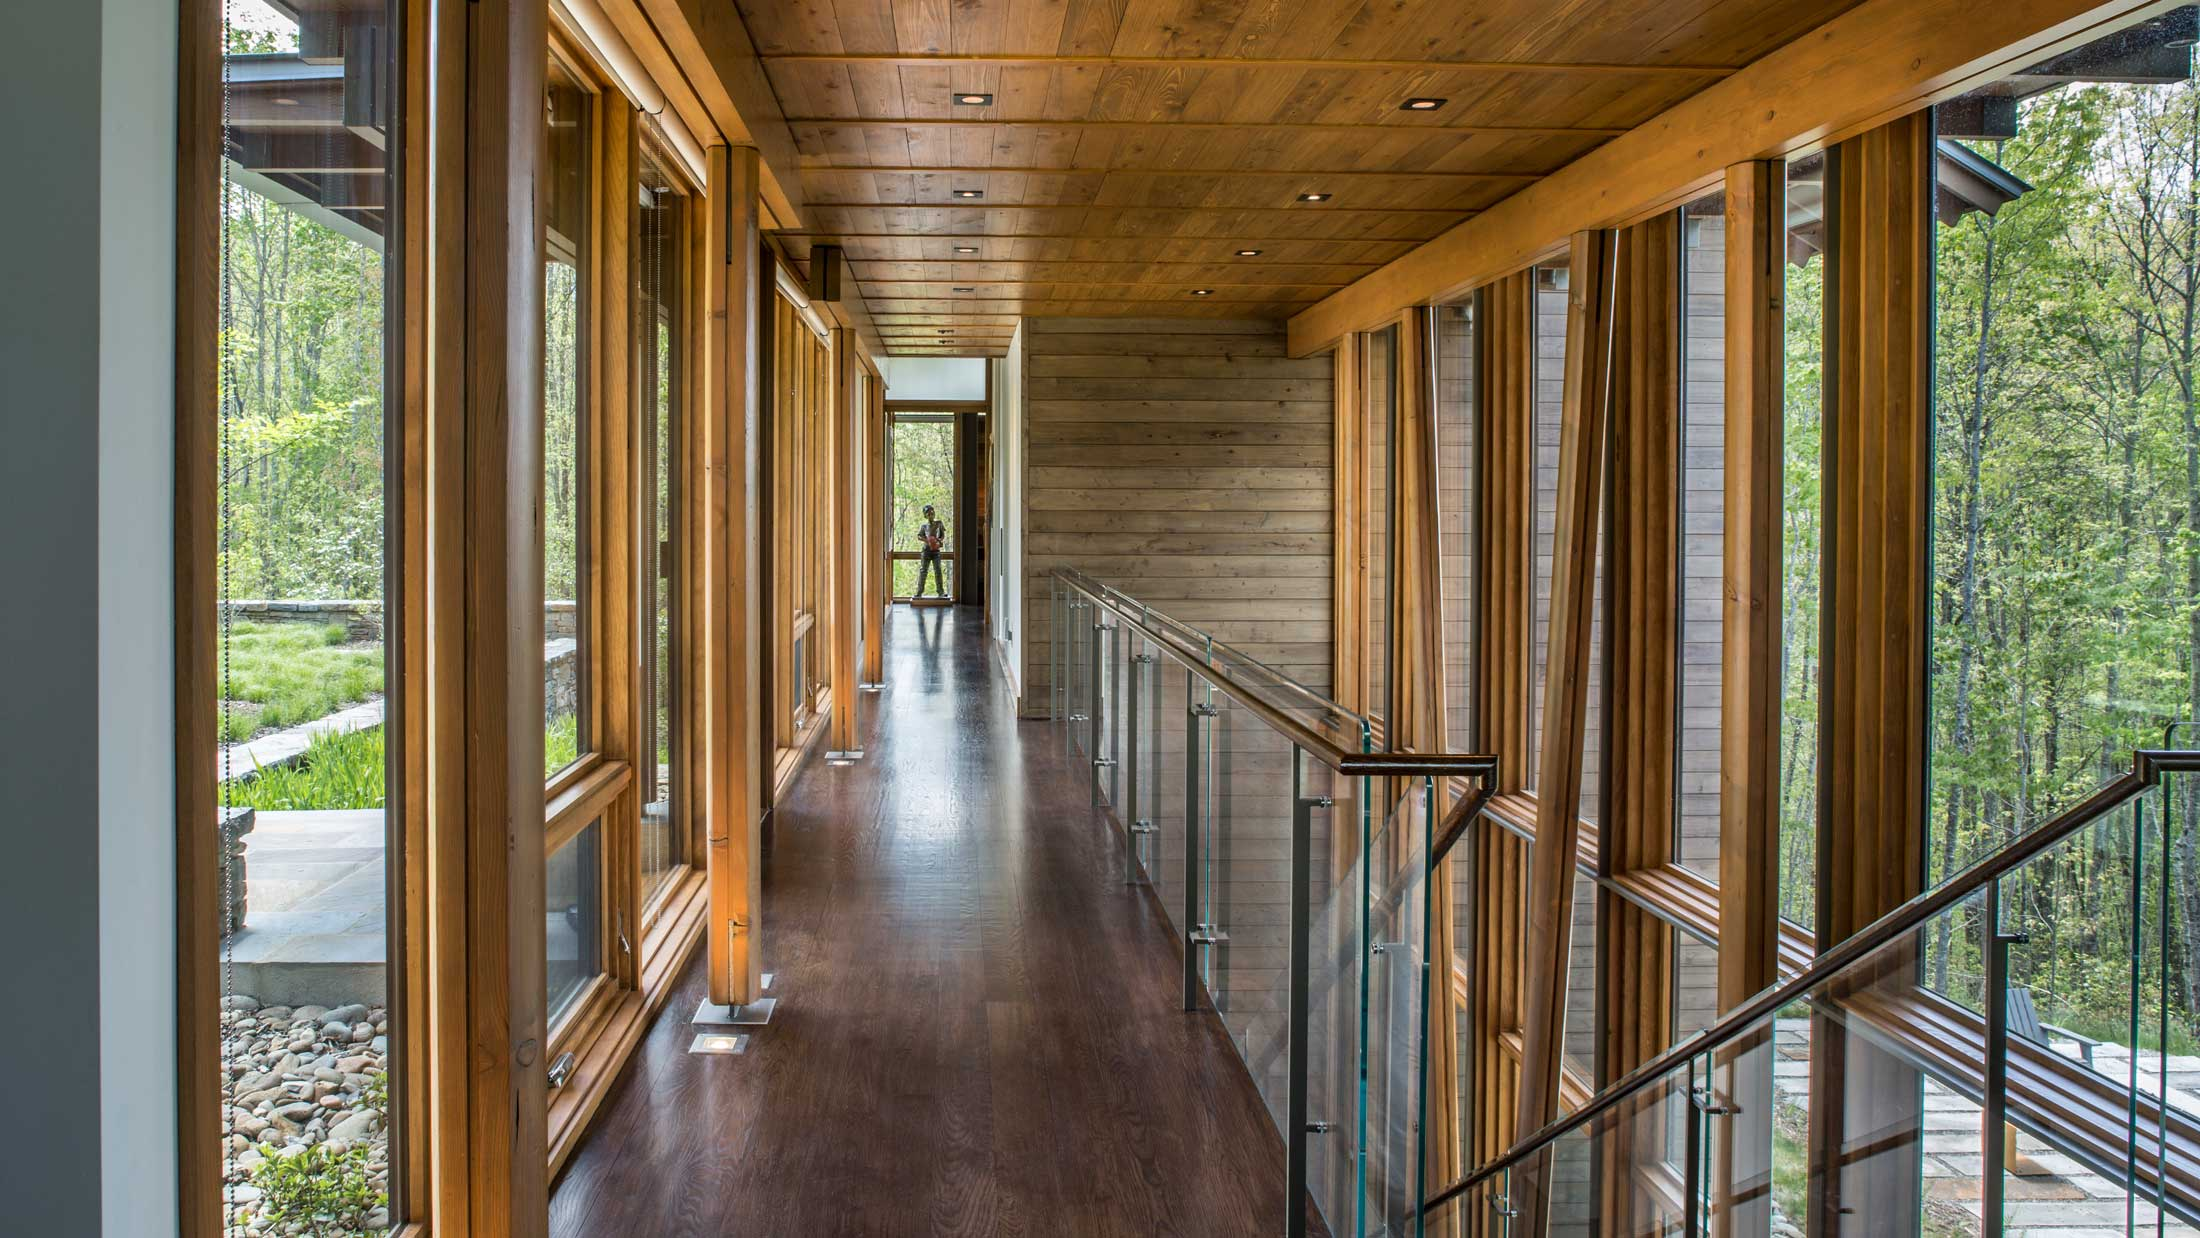 wood, steel and glass hallway and balcony